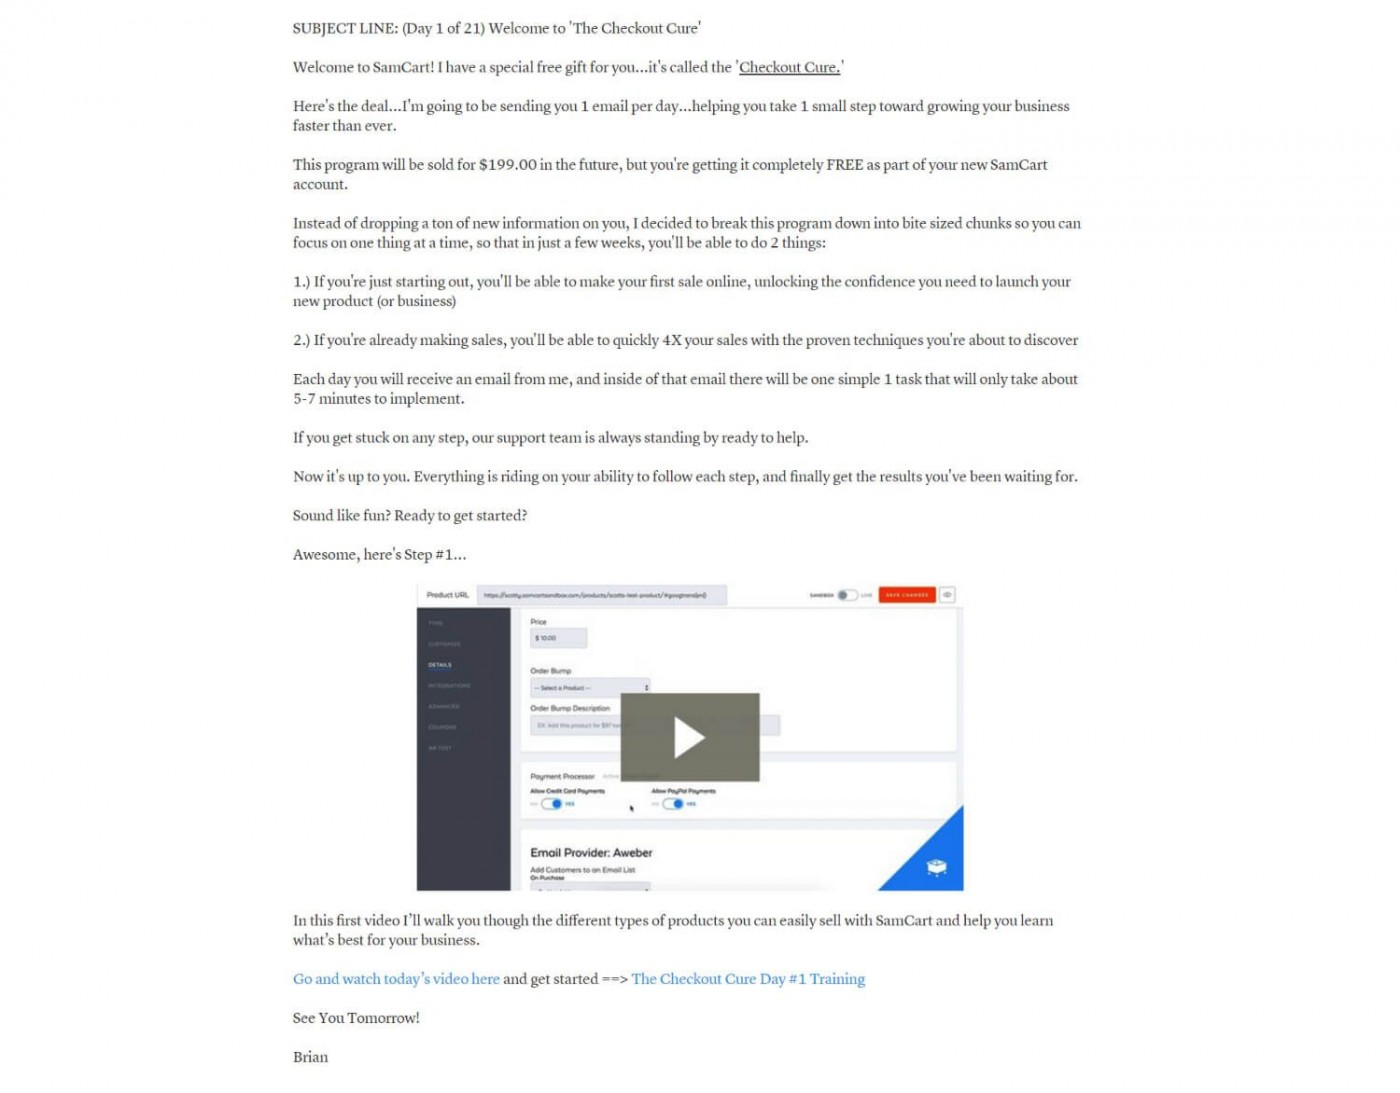 008 Marvelou Follow Up Email Template To Client Inspiration  Simple Letter For Payment After Sending Proposal1400